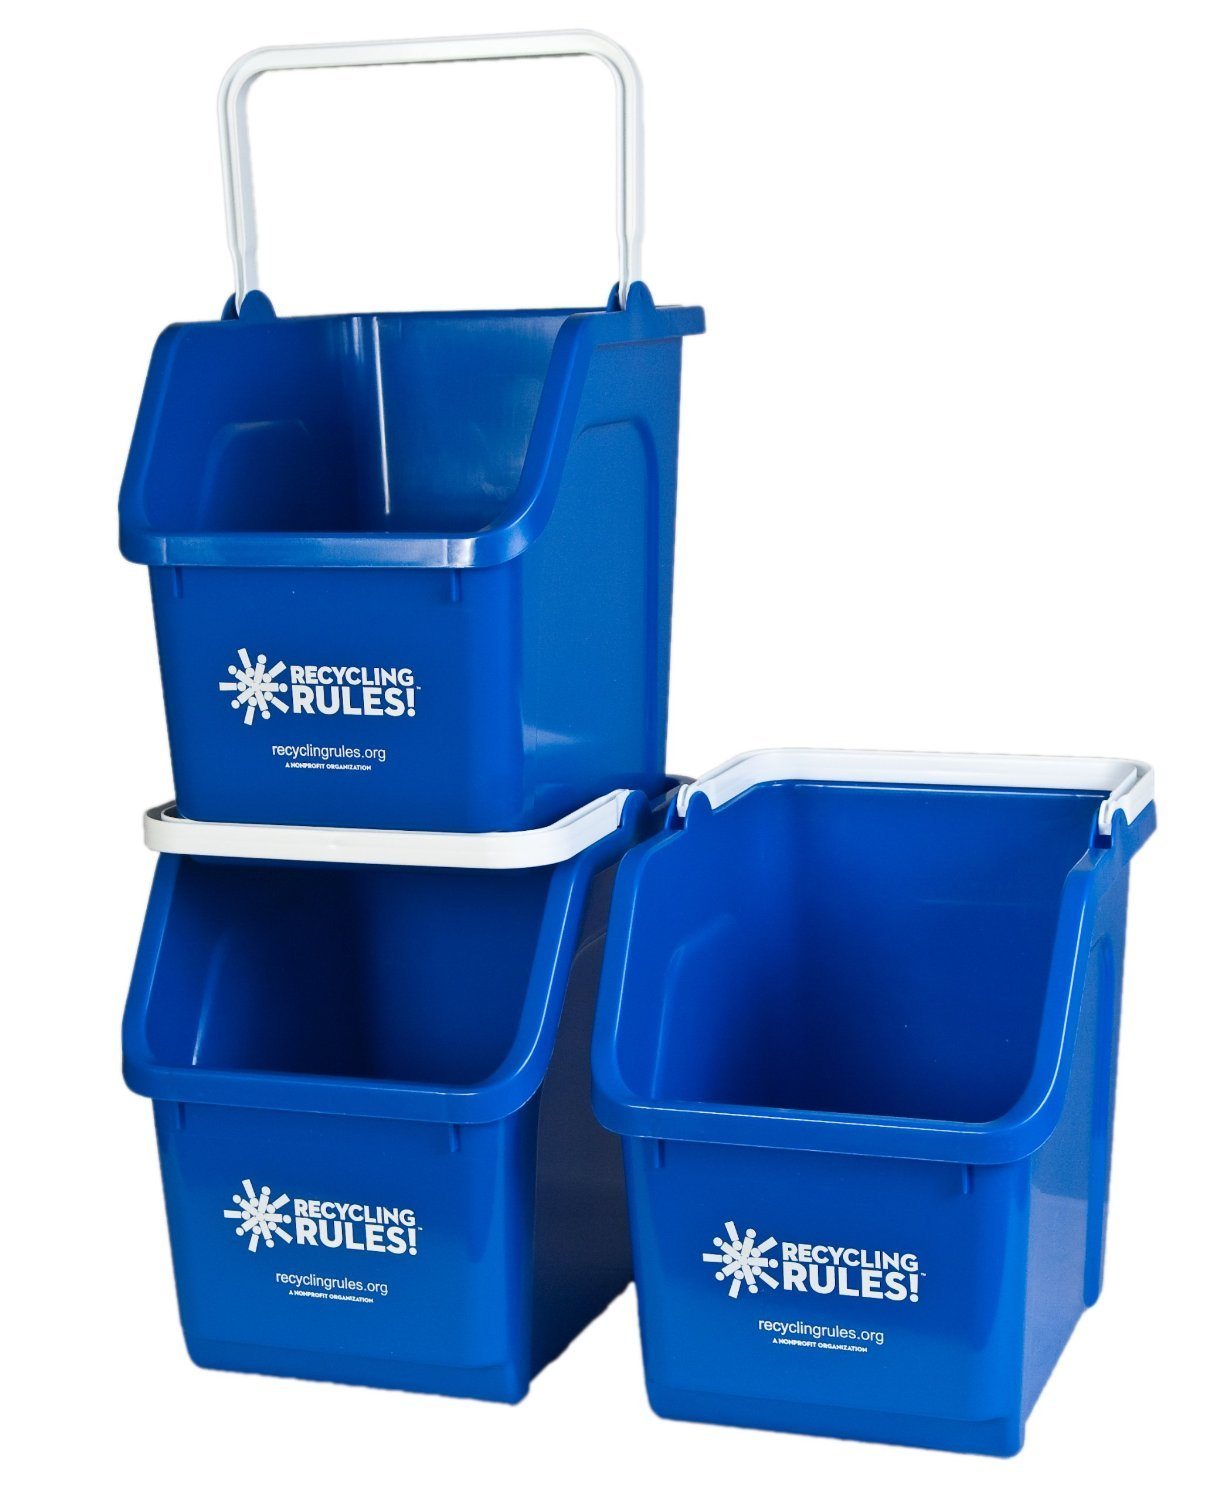 3 Pack of Bins